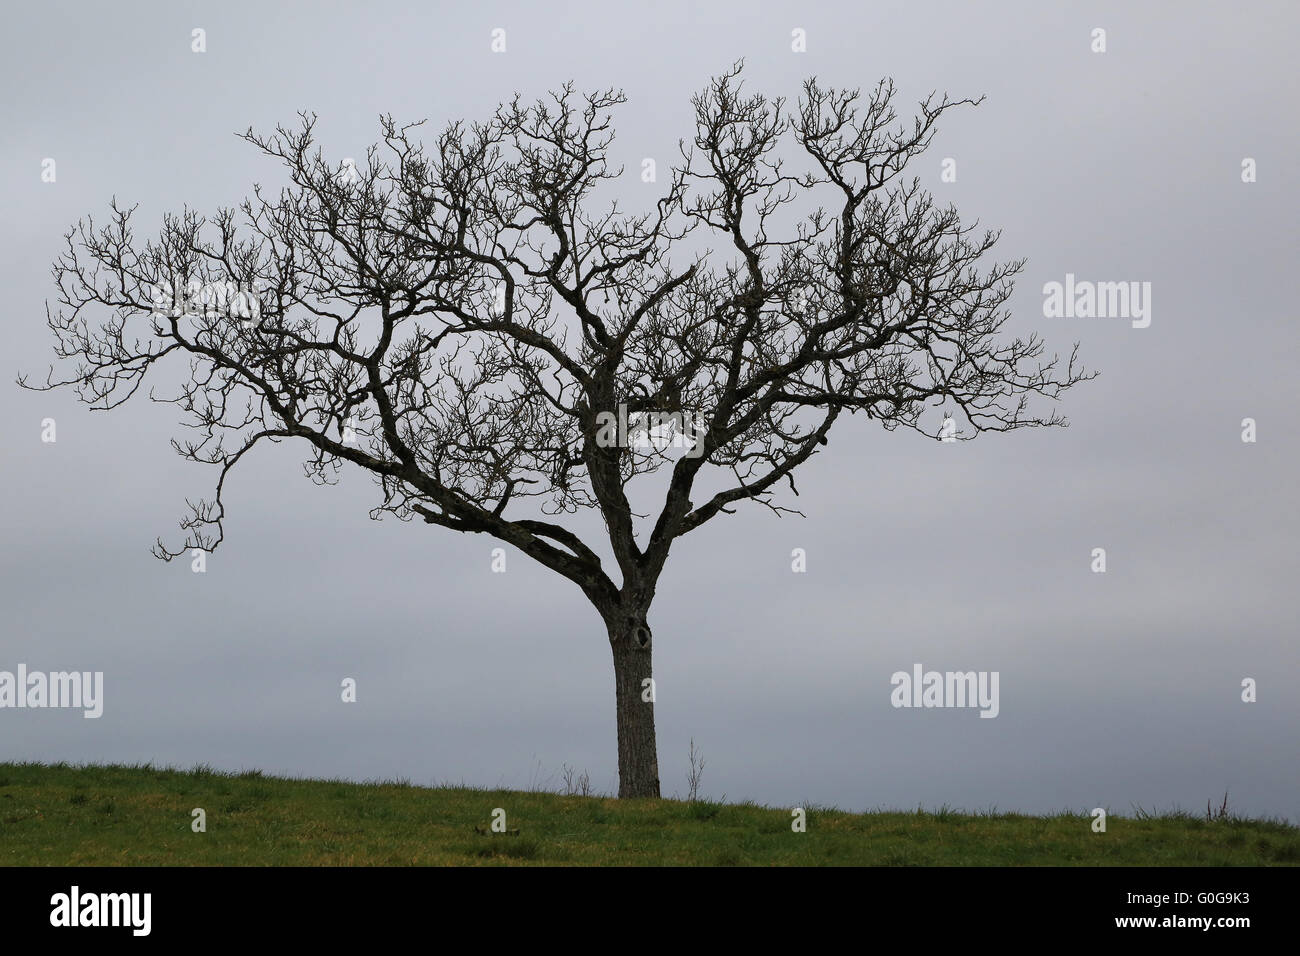 Walnut Tree Without Leaves Stock Photo